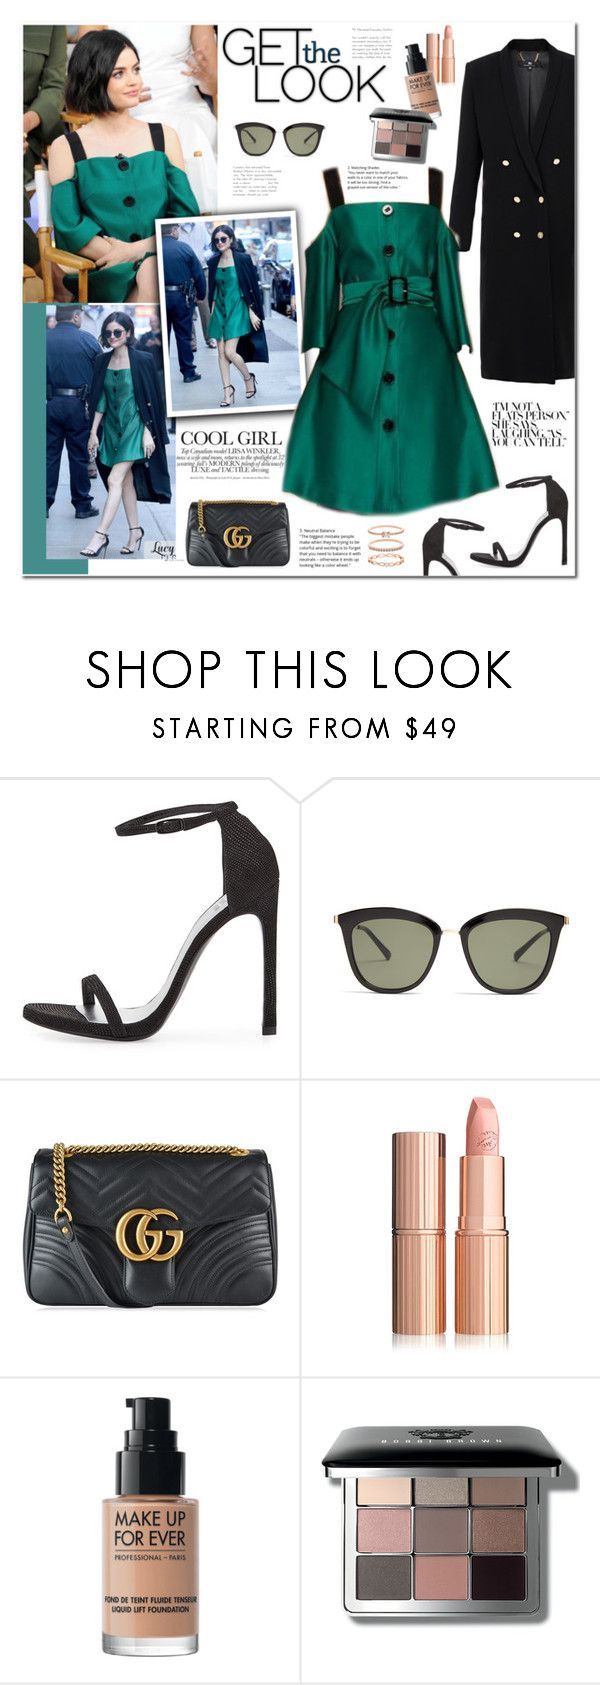 """""""Lucy Hale"""" by mery90 ❤ liked on Polyvore featuring Stuart Weitzman, Le Specs, Gucci, MAKE UP FOR EVER, Bobbi Brown Cosmetics, Accessorize and GetTheLook"""